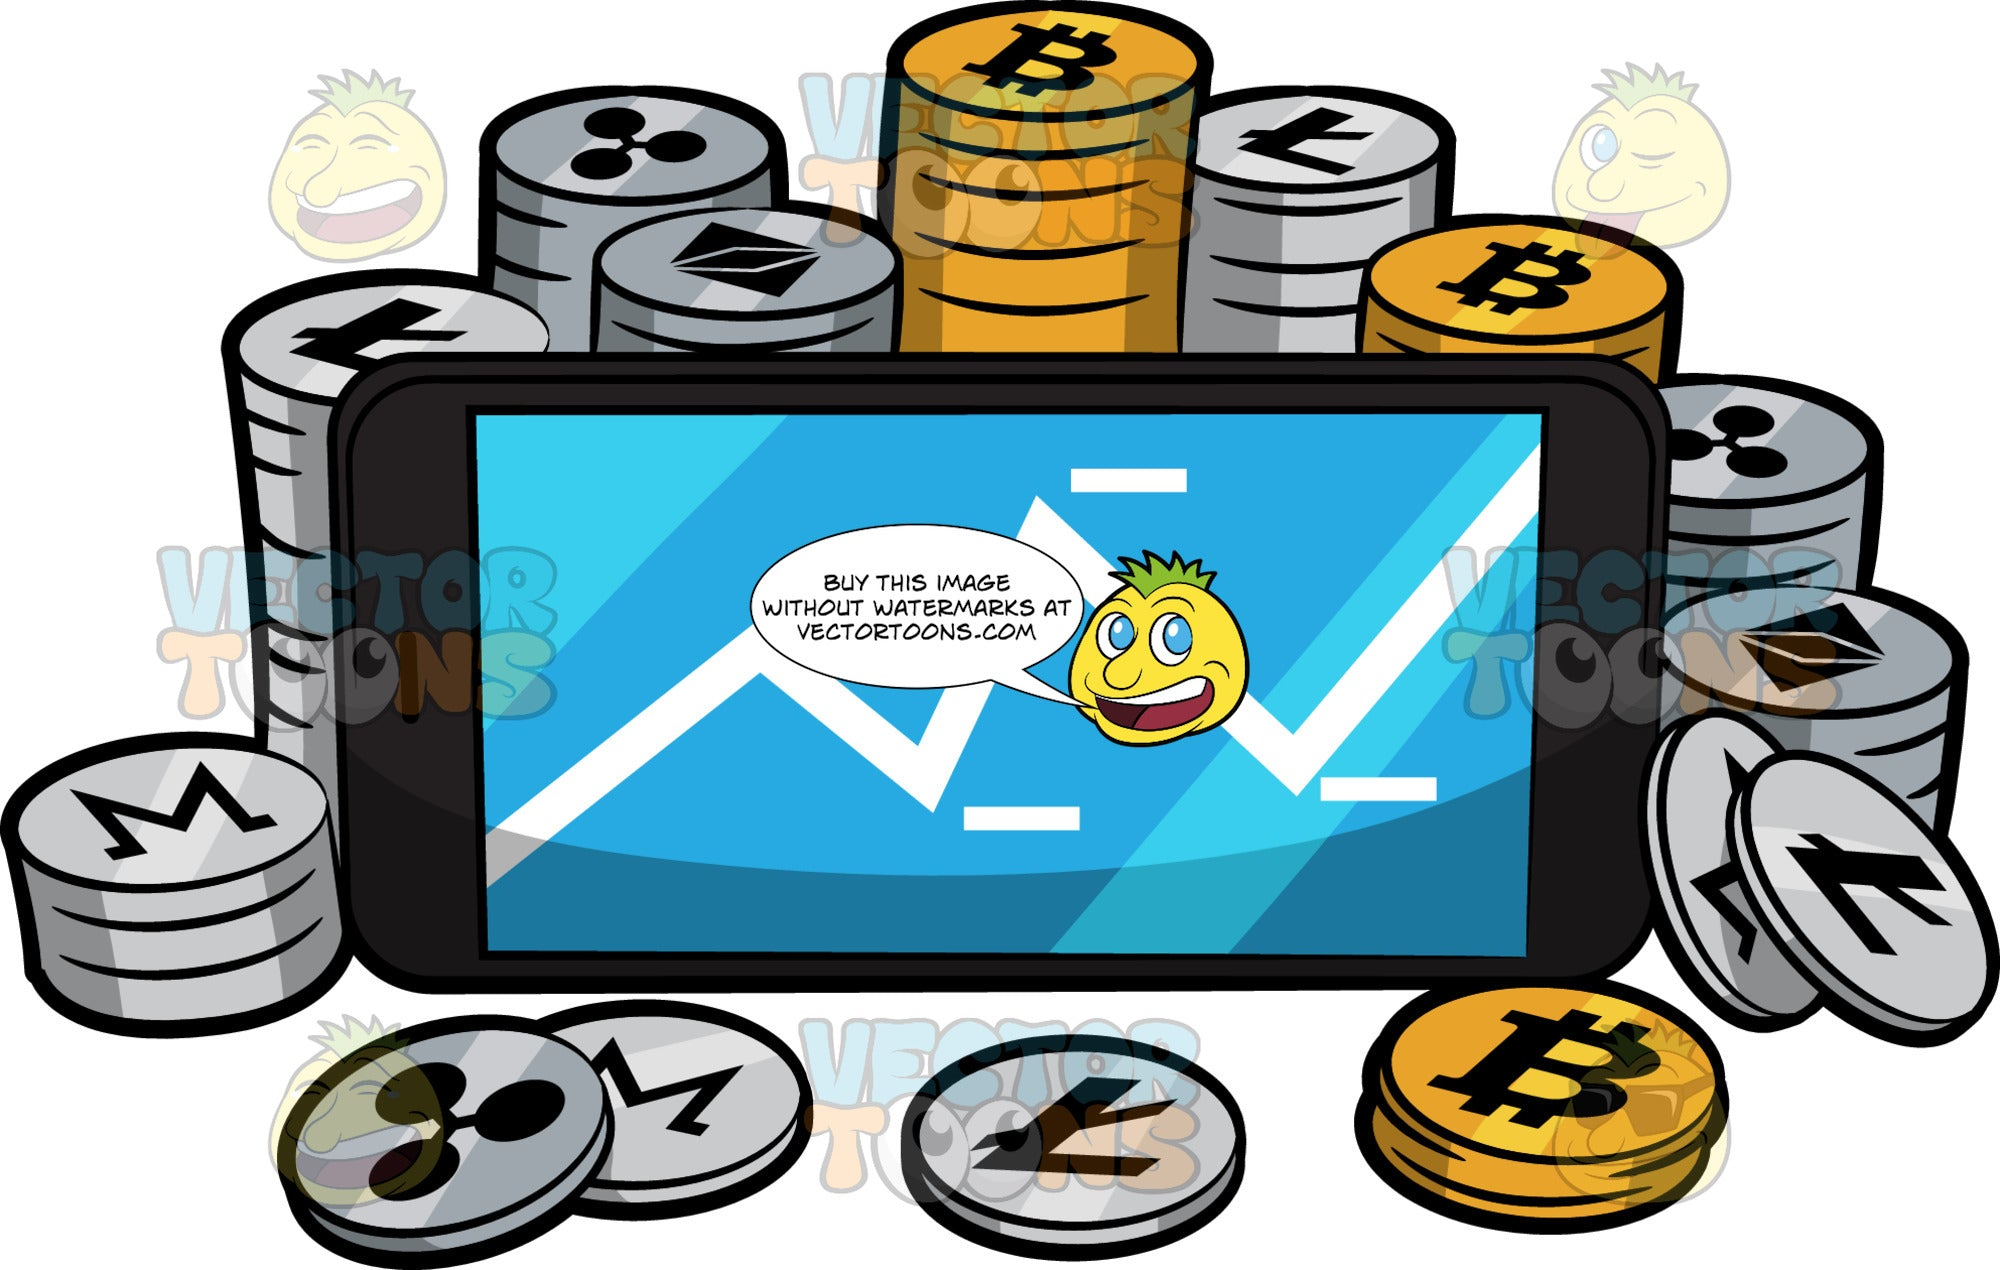 Stacks Of Cyrptocurrency Coins Around A Phone